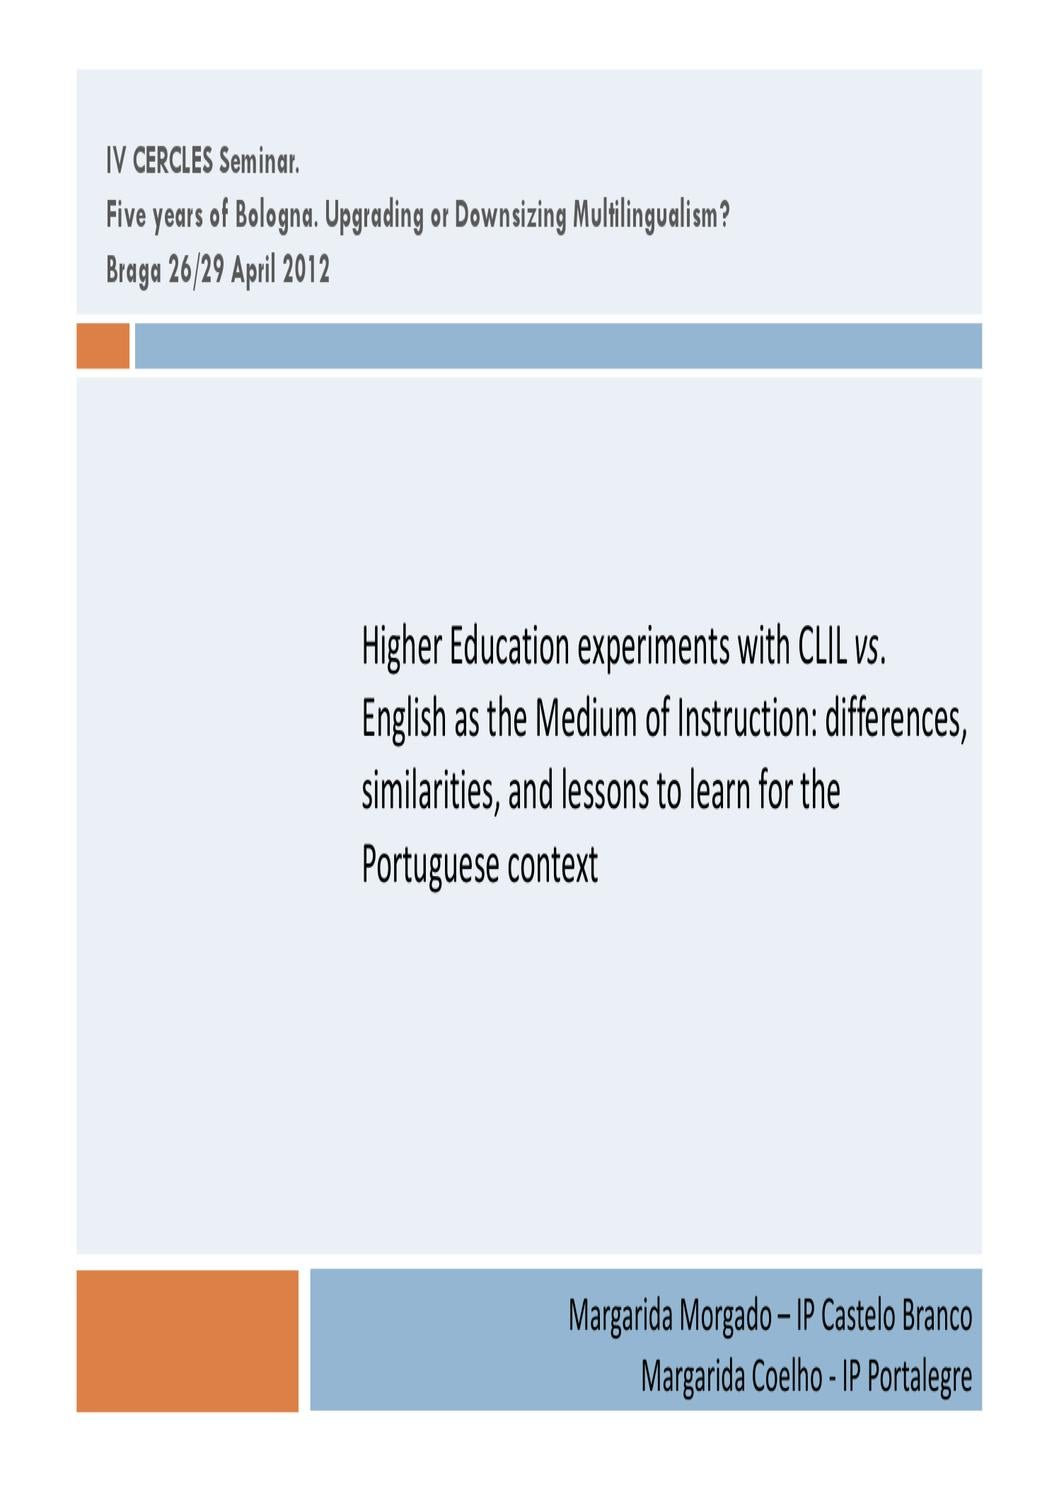 Towards a Multilingual Language Policy CLIL in Higher Education